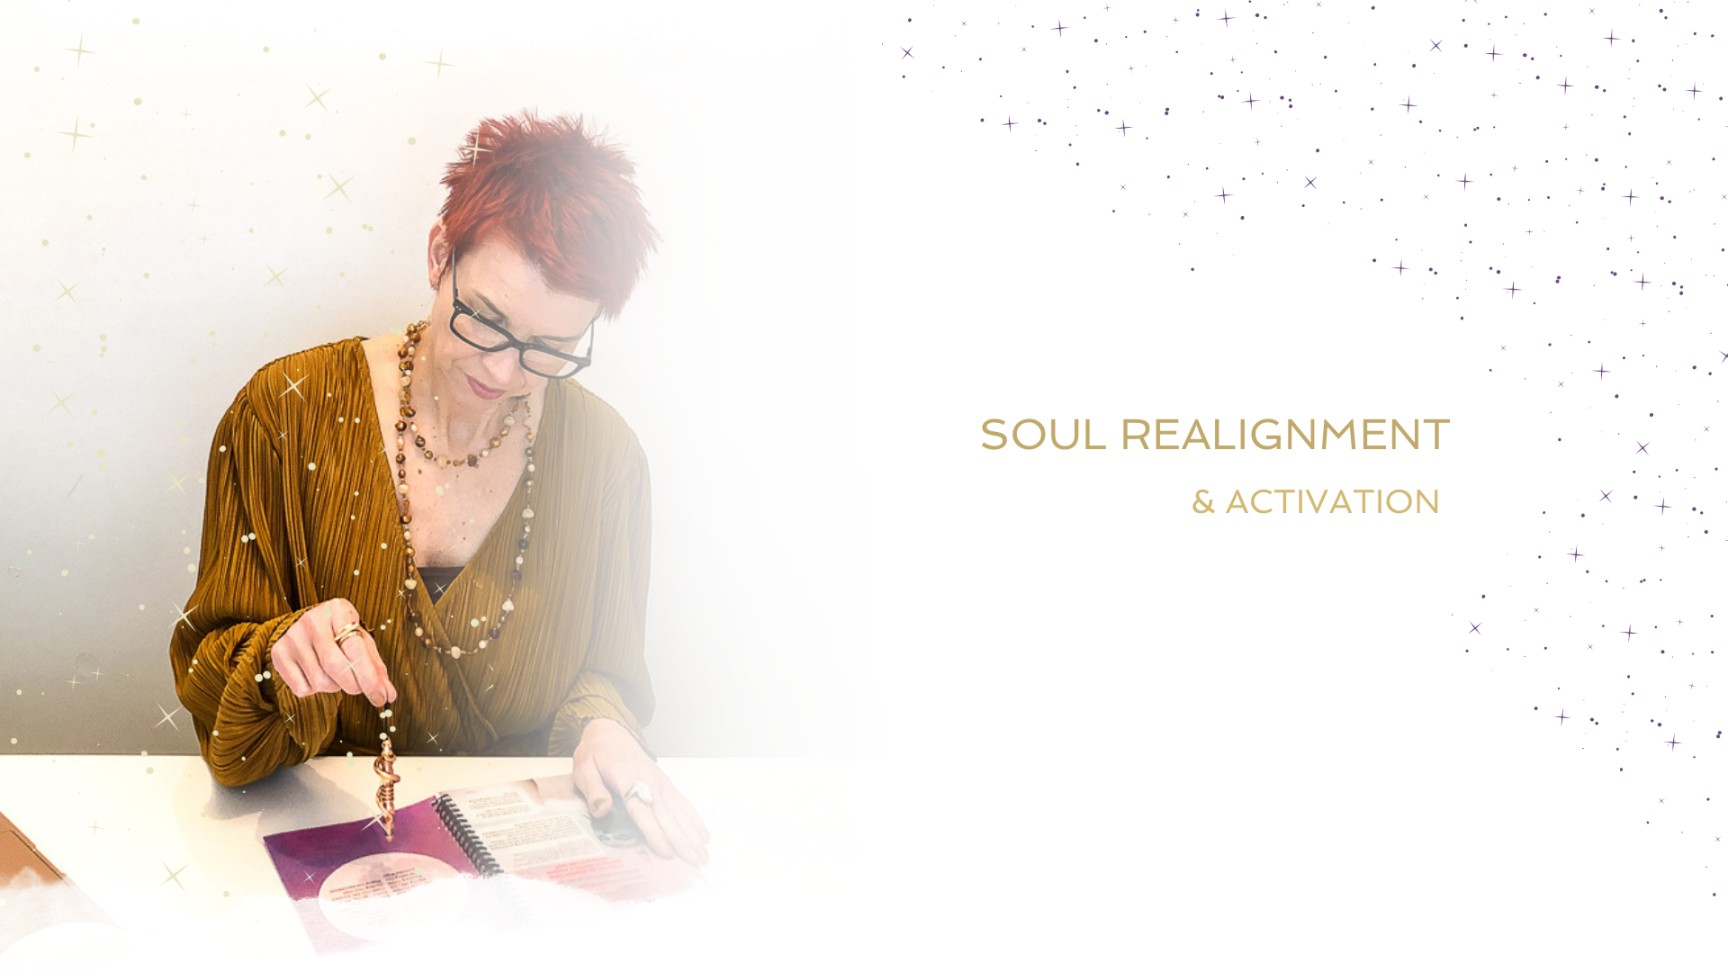 soul realignment and activation